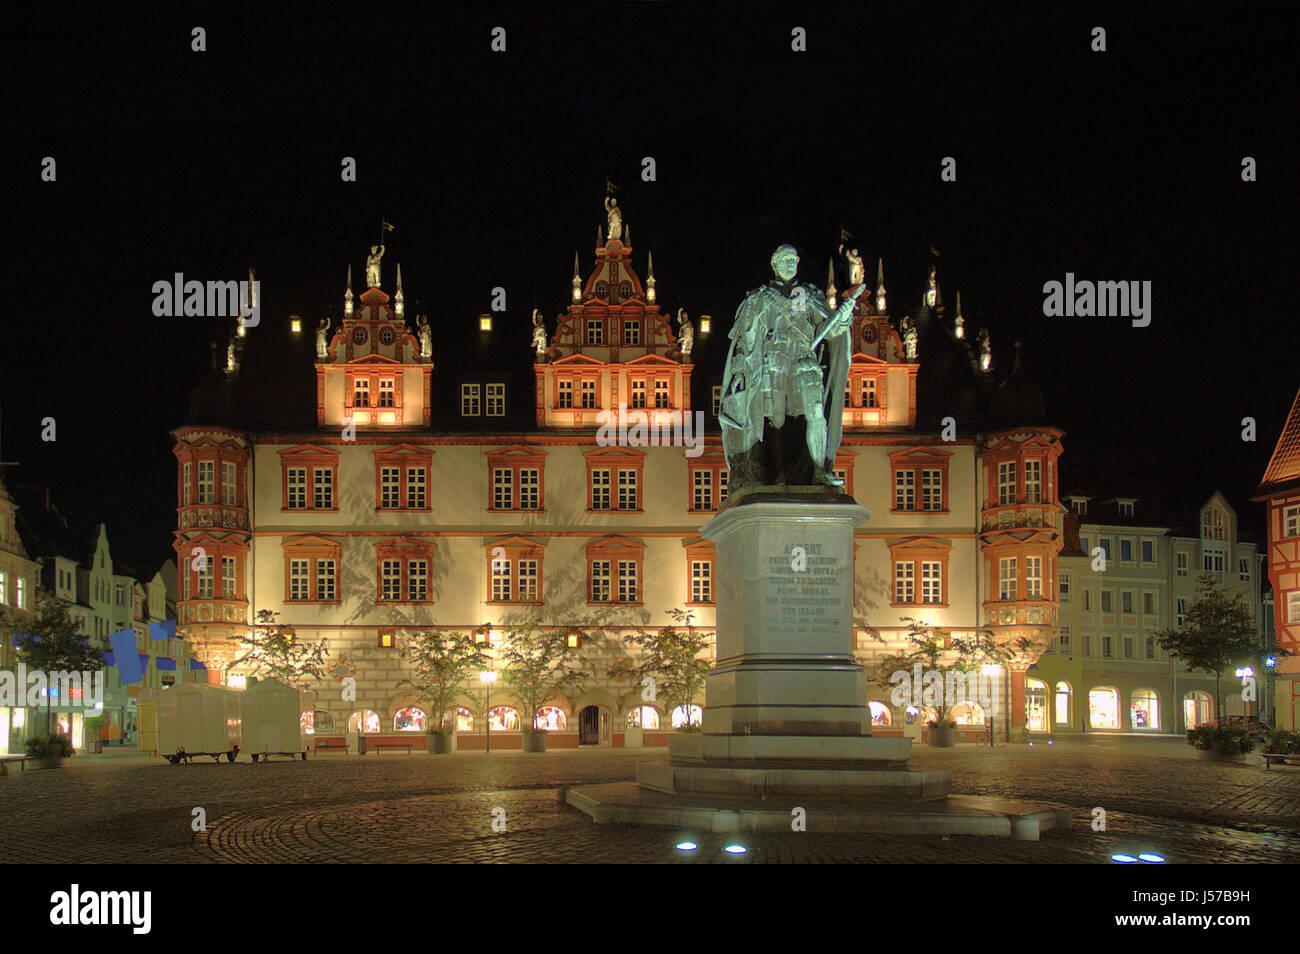 prince of saxony coburg gotha stockfotos prince of saxony coburg gotha bilder alamy. Black Bedroom Furniture Sets. Home Design Ideas